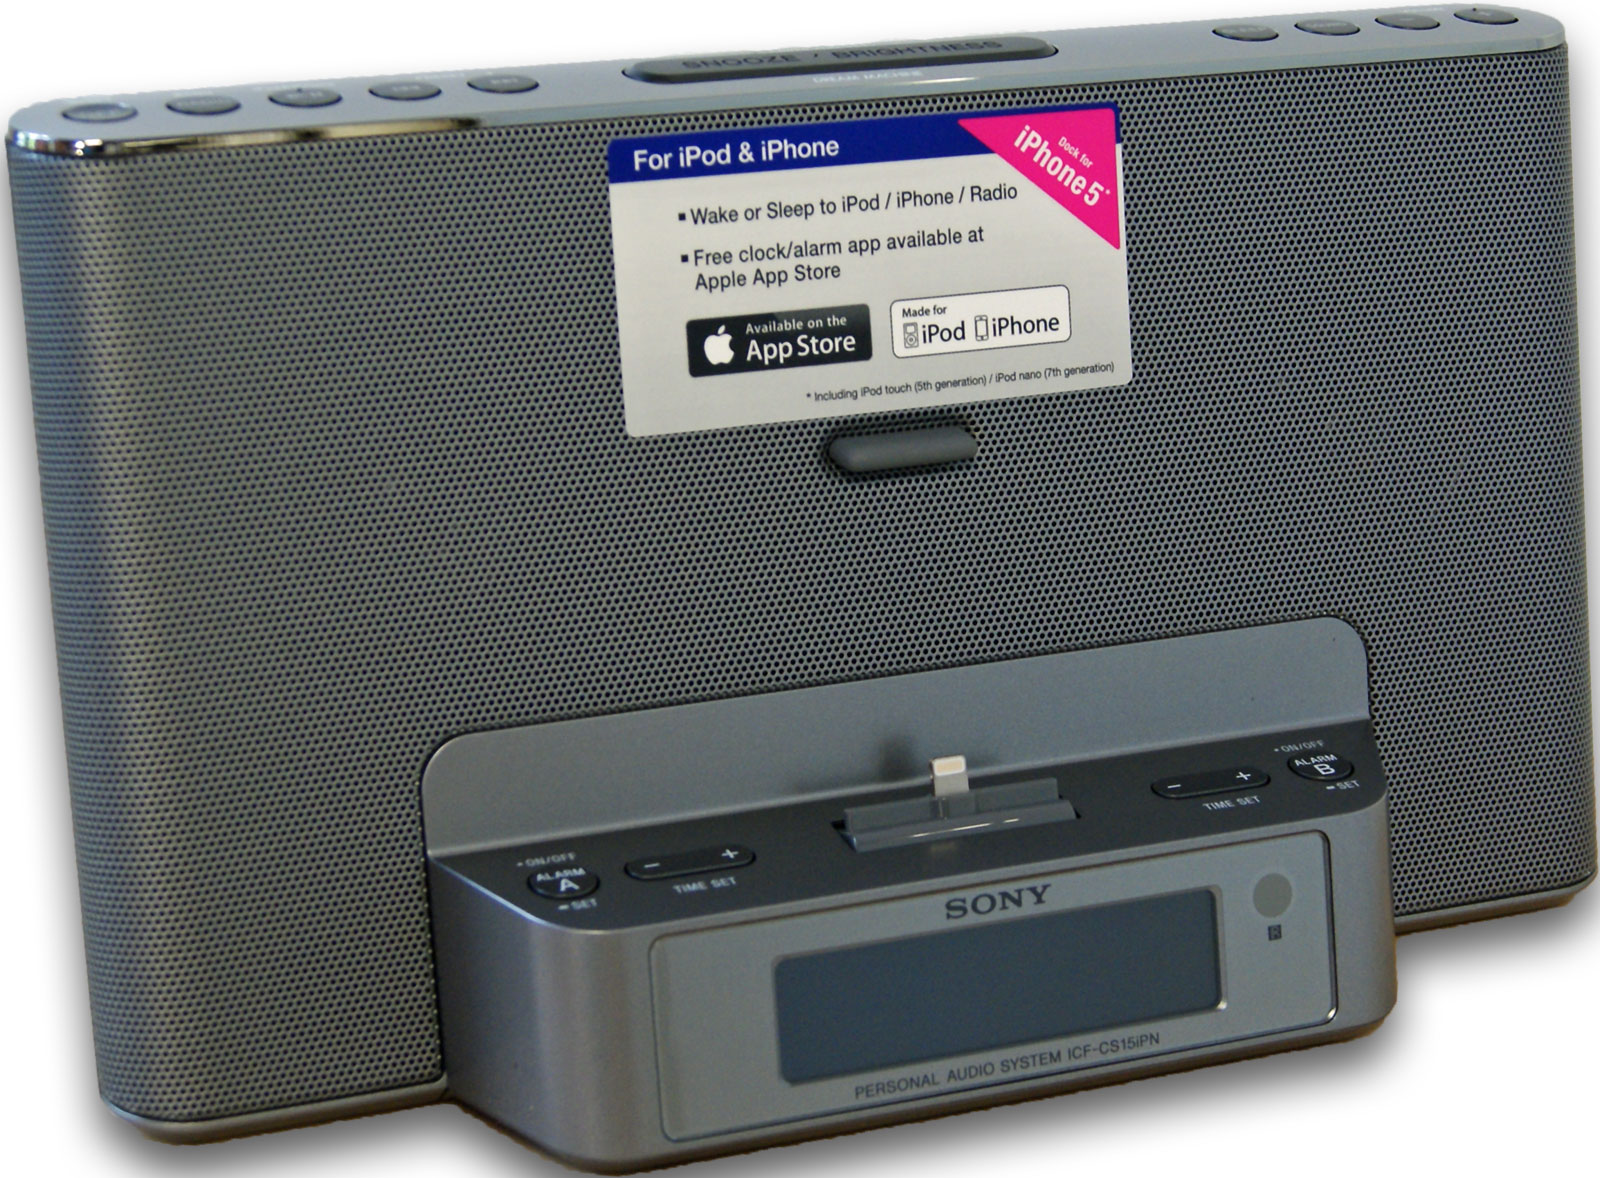 Sony icf cs15ipn iphone ipod clock radio dock with for Icf pricing